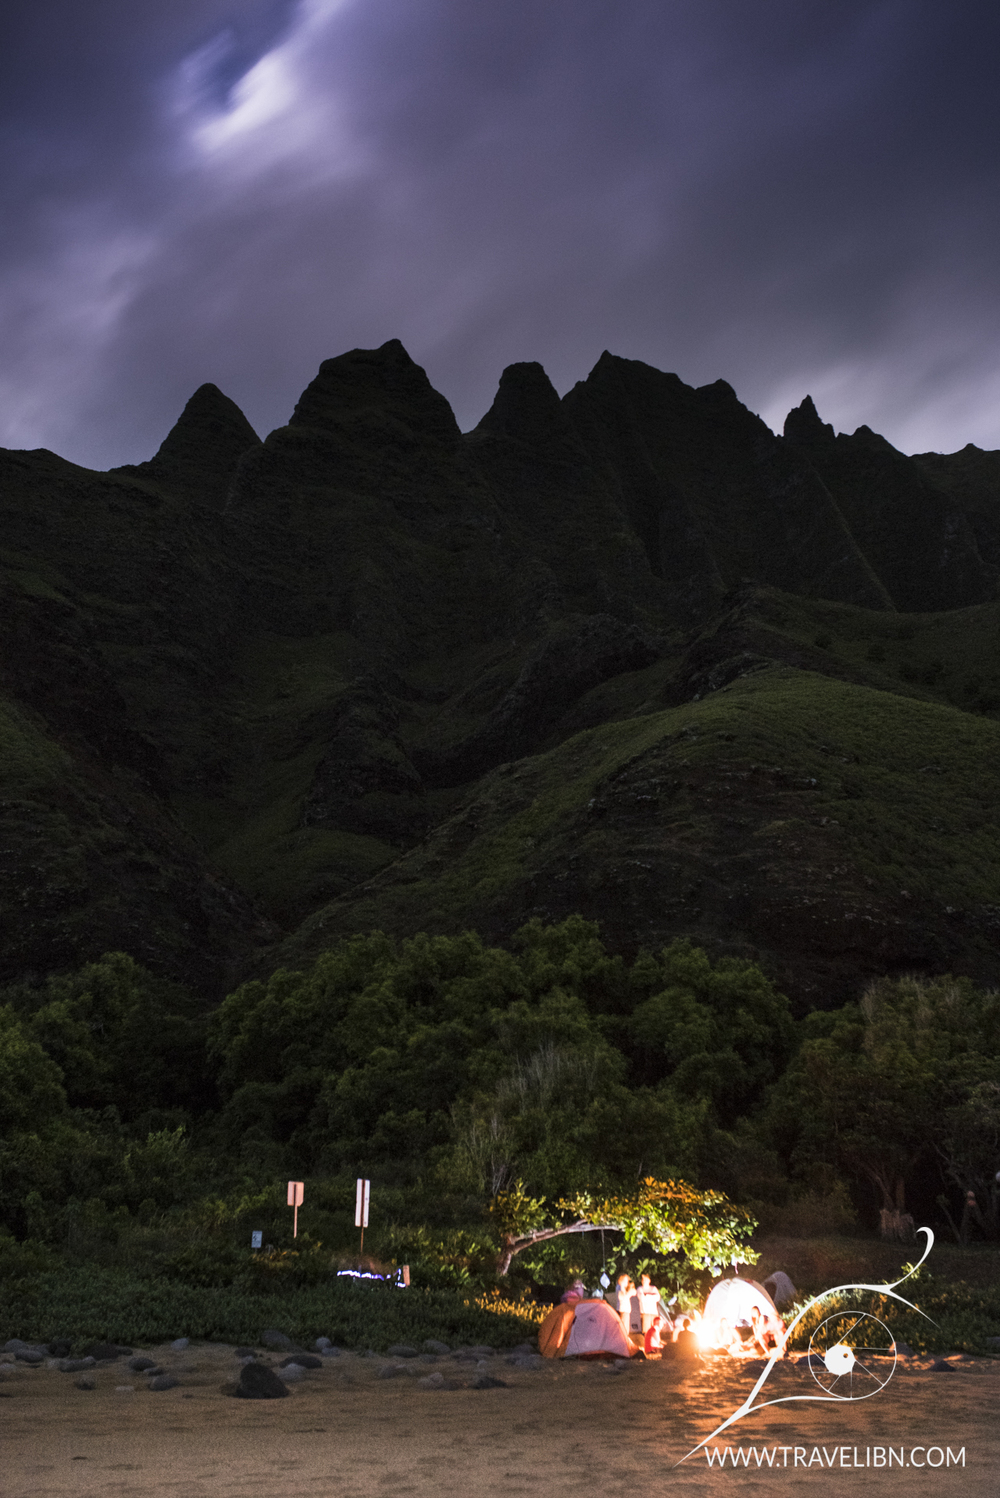 Night Kalalau Campground